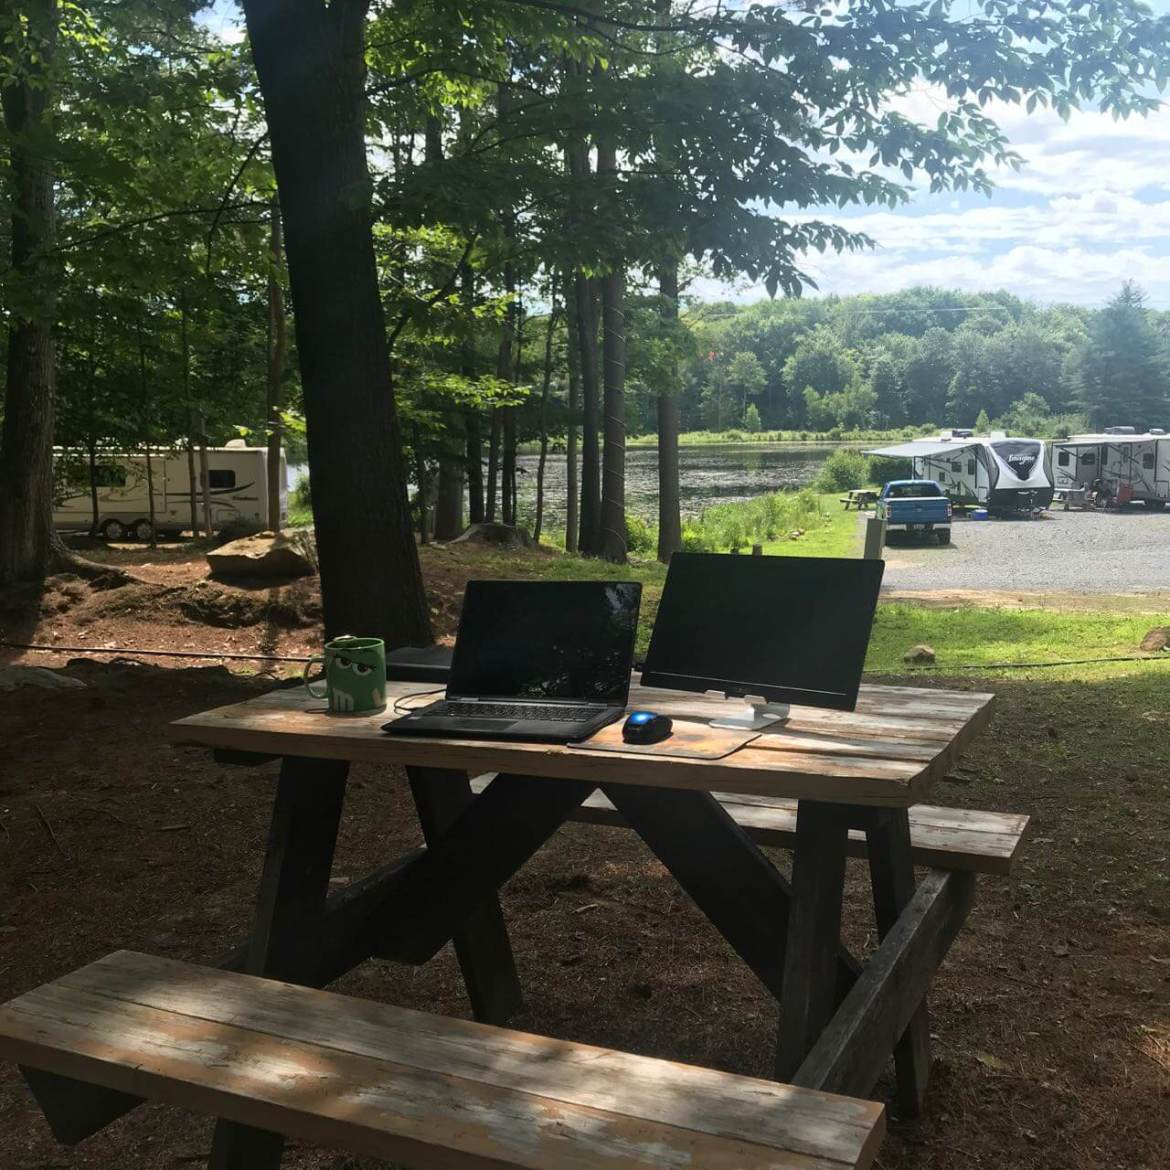 laptop and monitor on picnic table at campsite